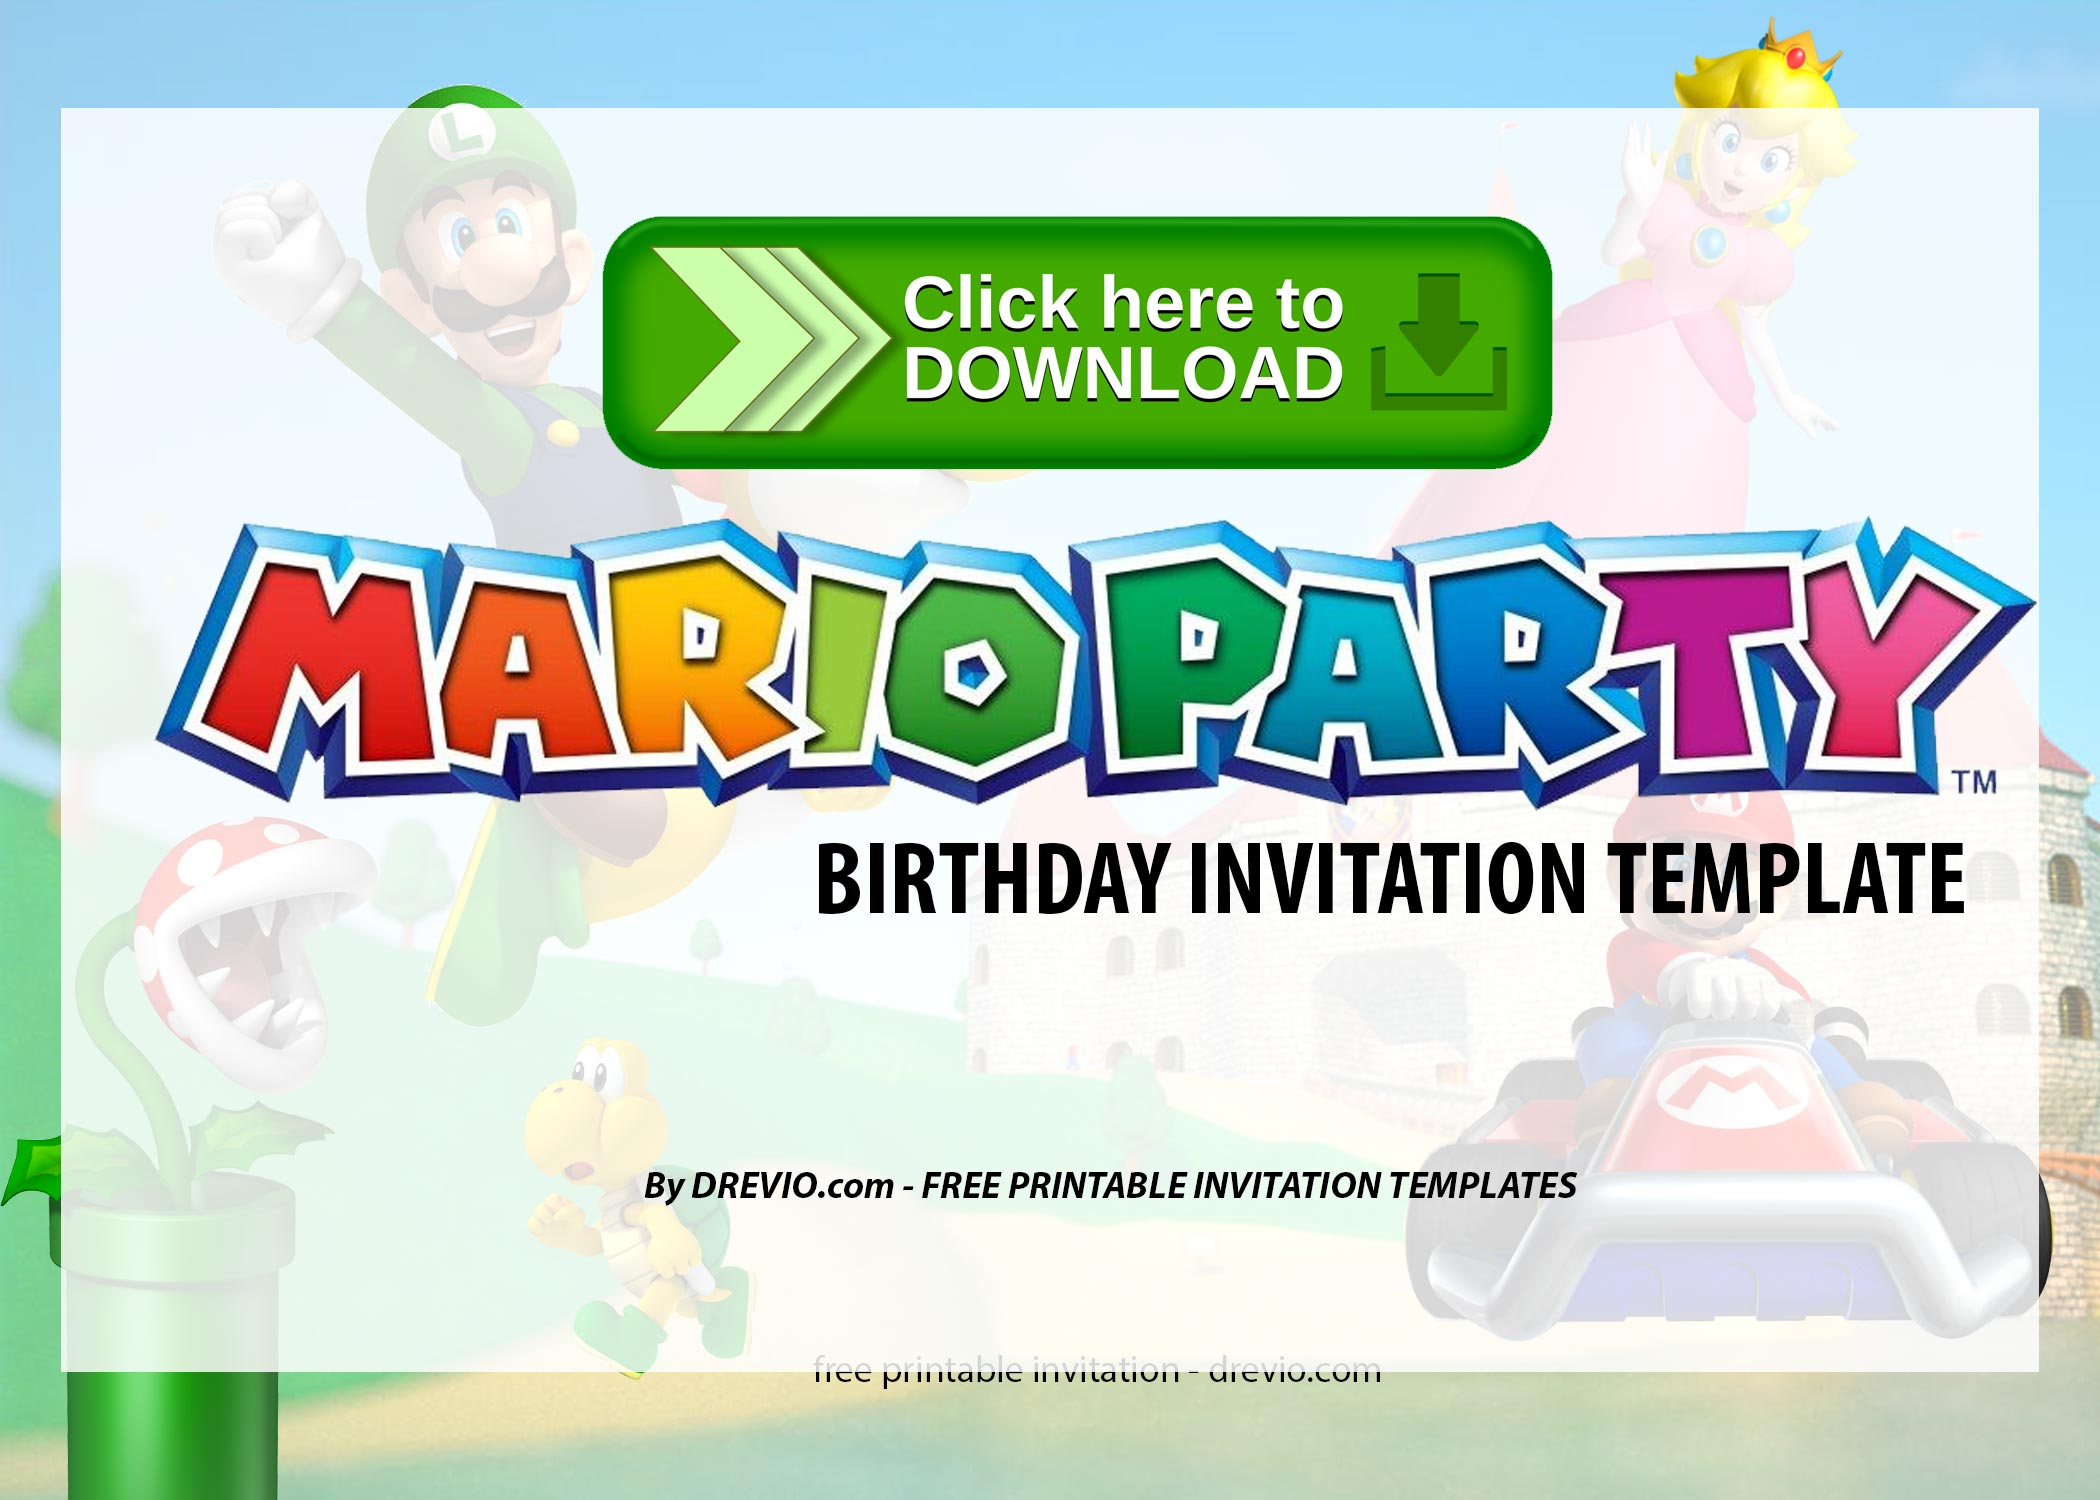 Free Printable Super Mario Party Birthday Invitation Templates Drevio